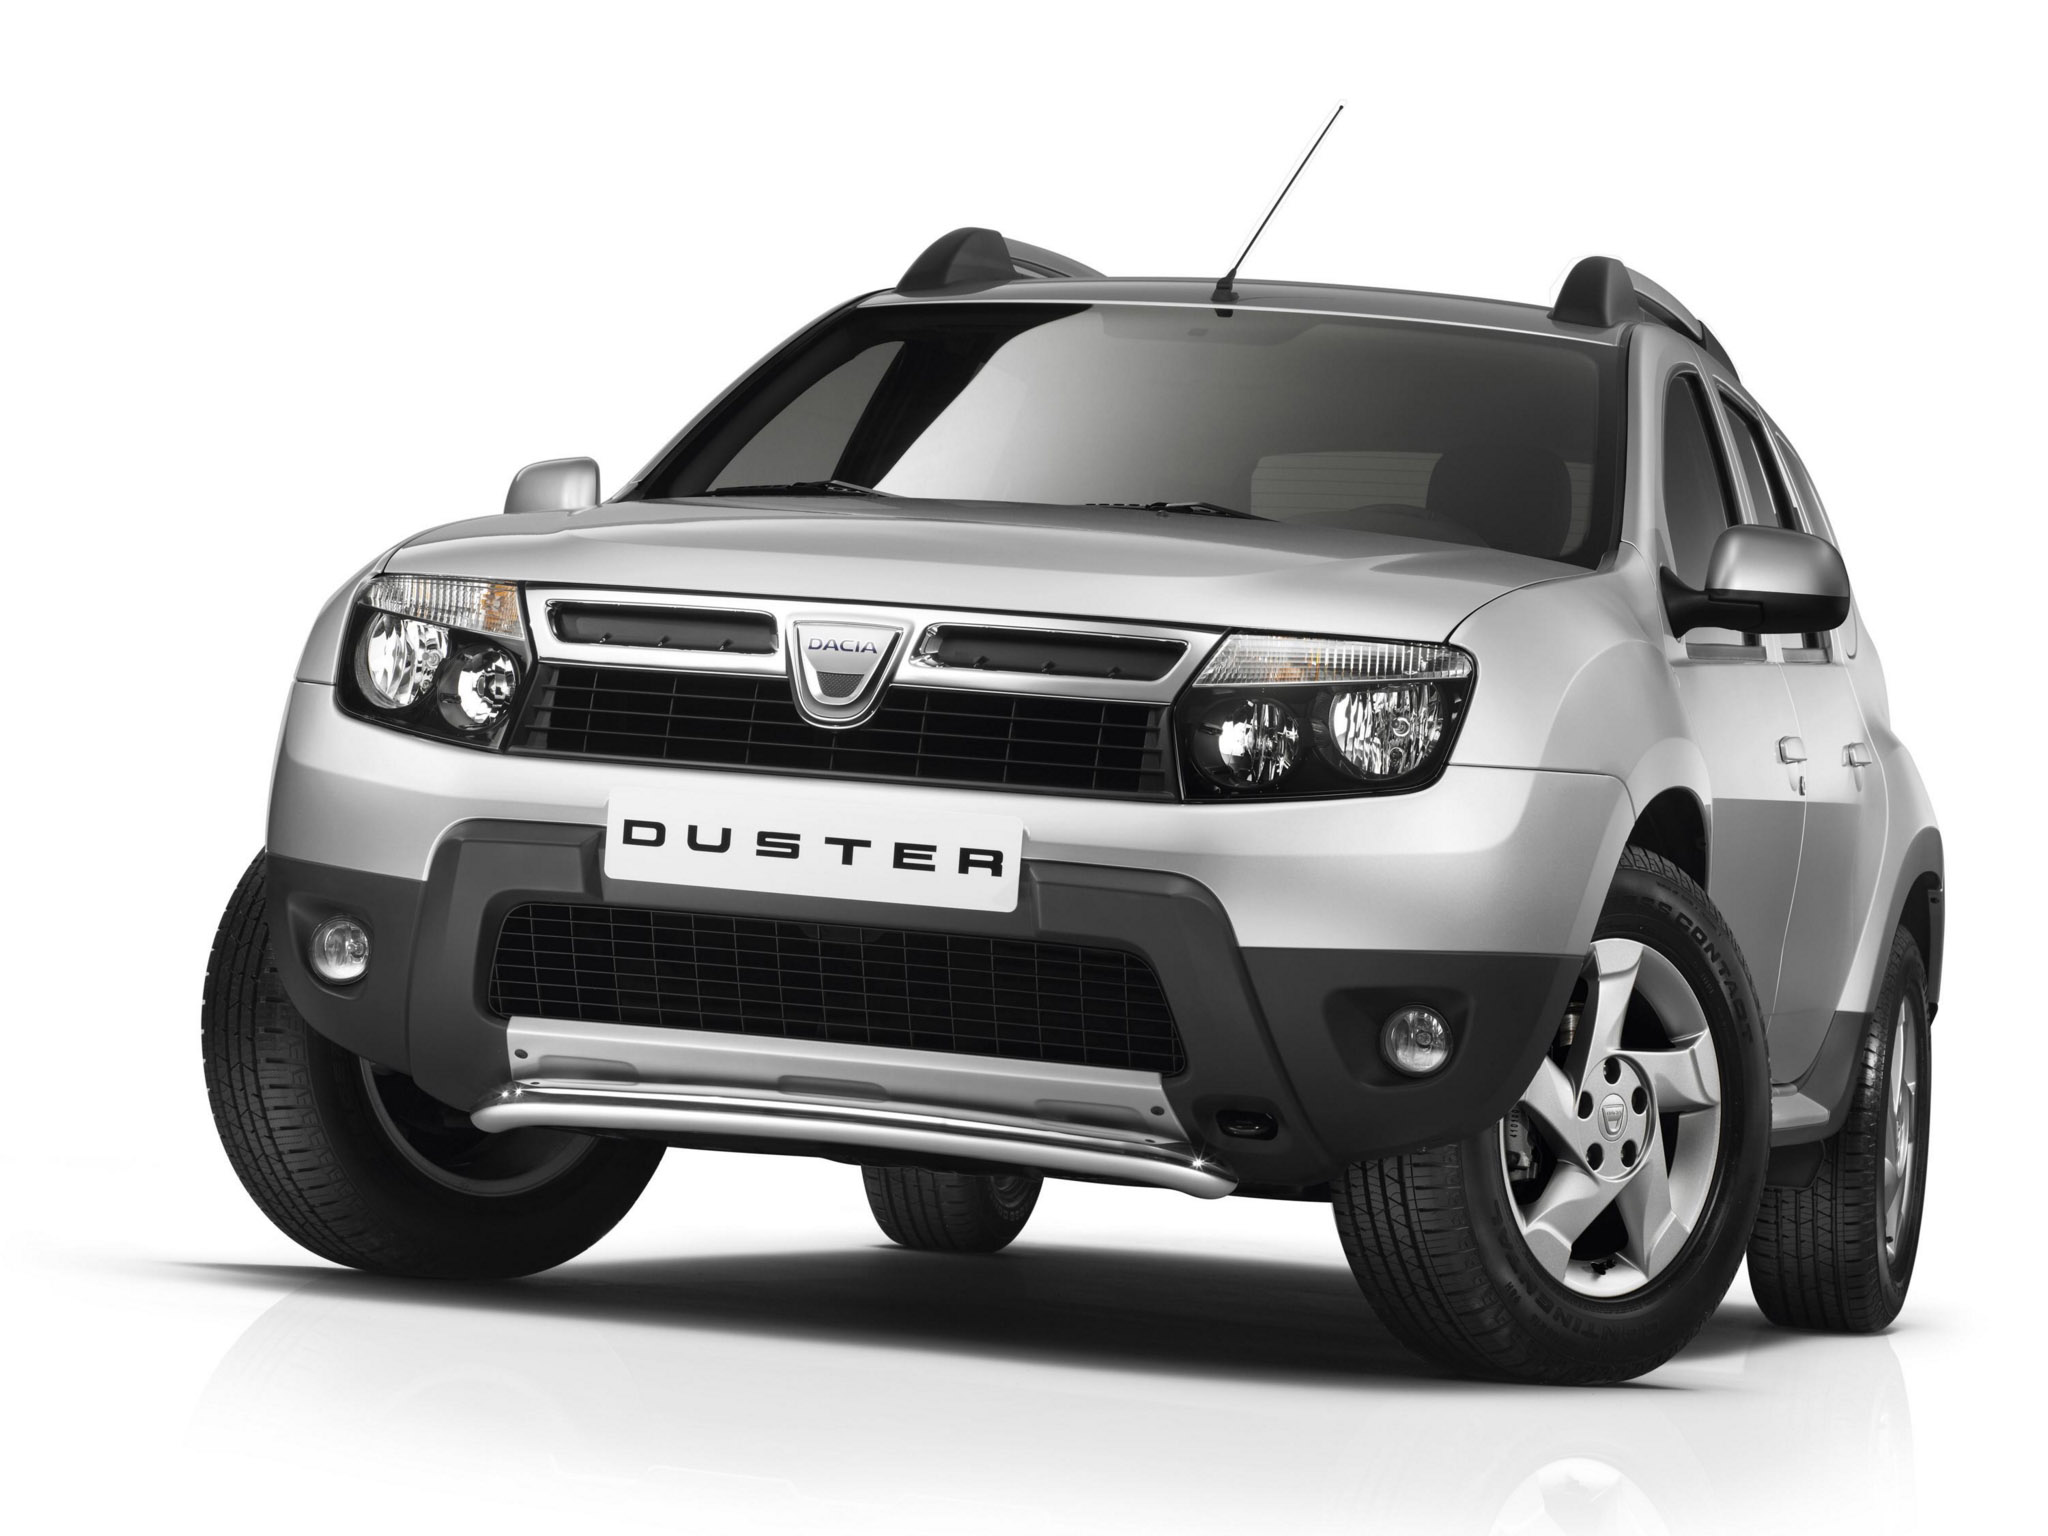 dacia duster 2010 dacia duster 2010 photo 16 car in pictures car photo gallery. Black Bedroom Furniture Sets. Home Design Ideas